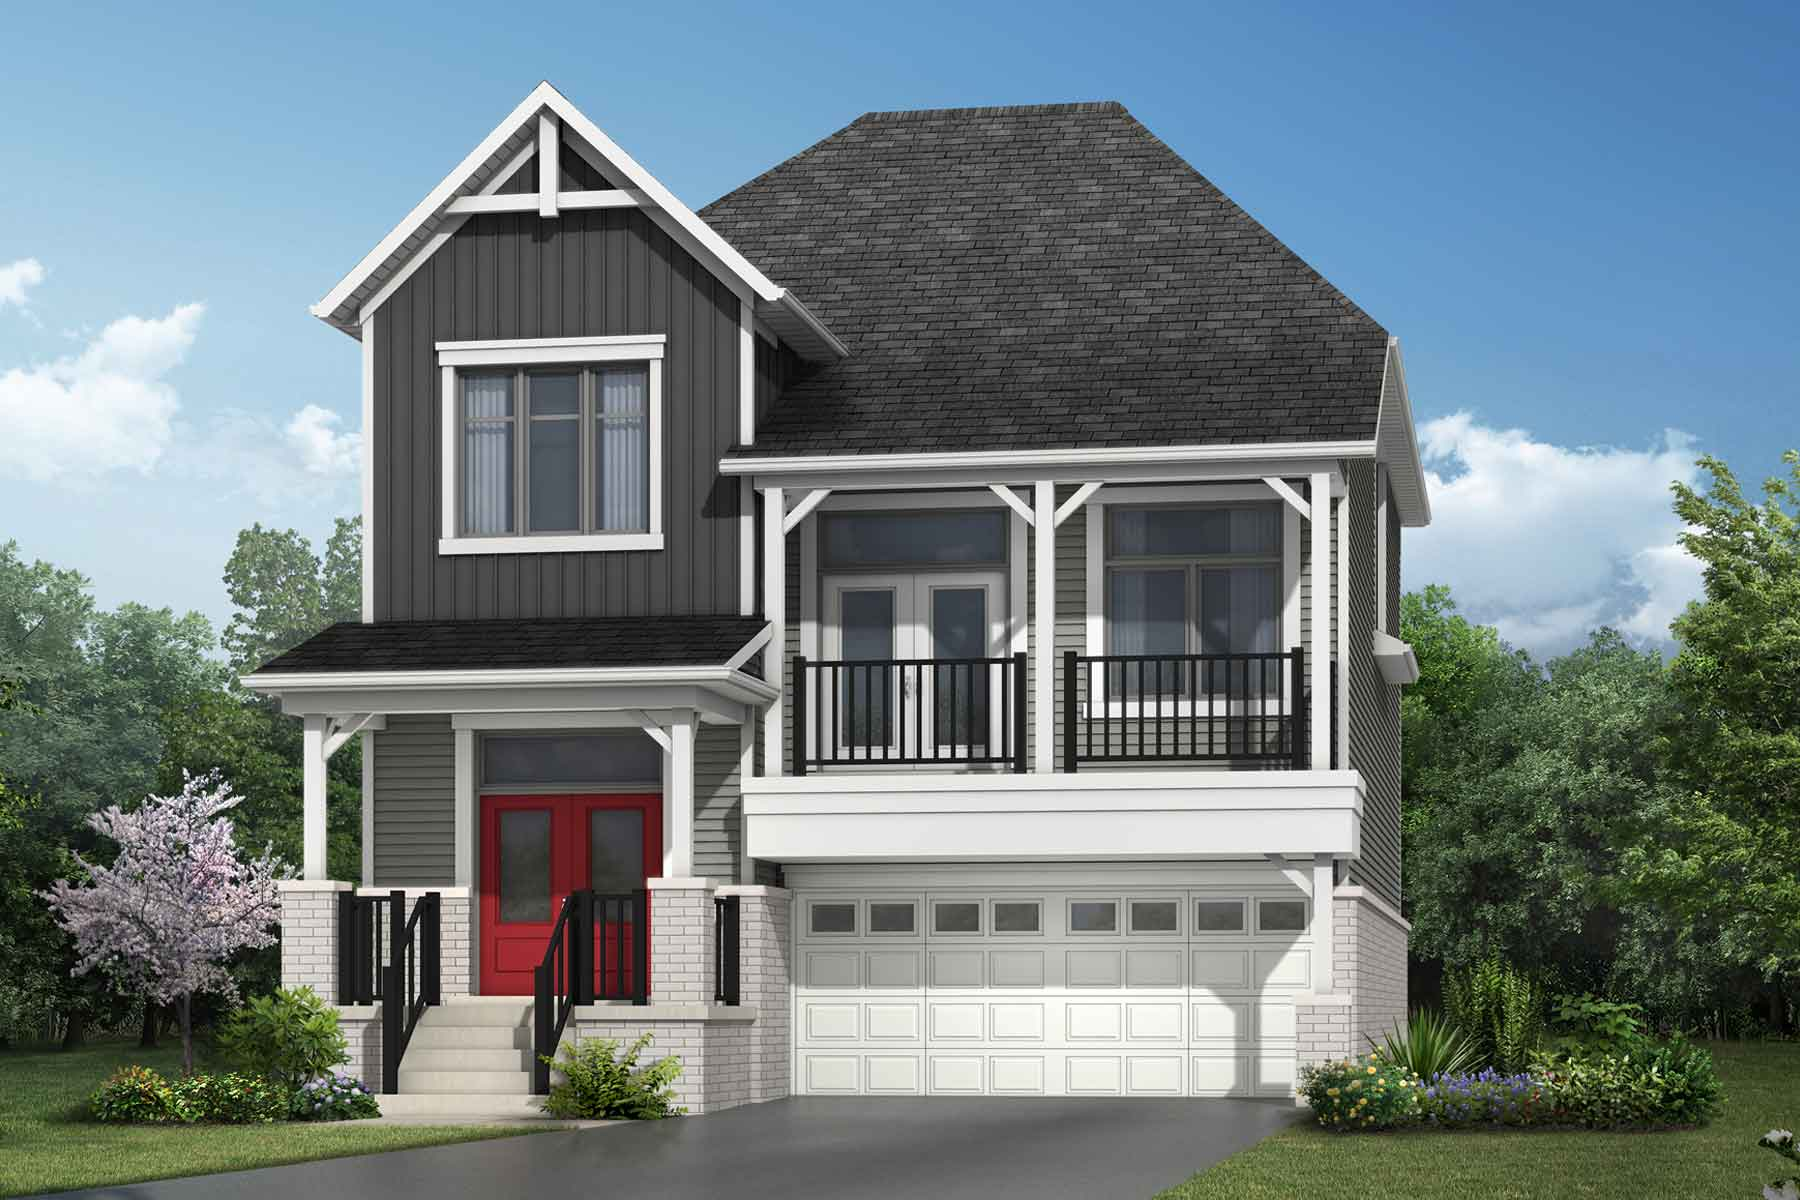 The Thorndale Plan farmhouse_southestates_thorndale at Wildflower Crossing in Kitchener Ontario by Mattamy Homes